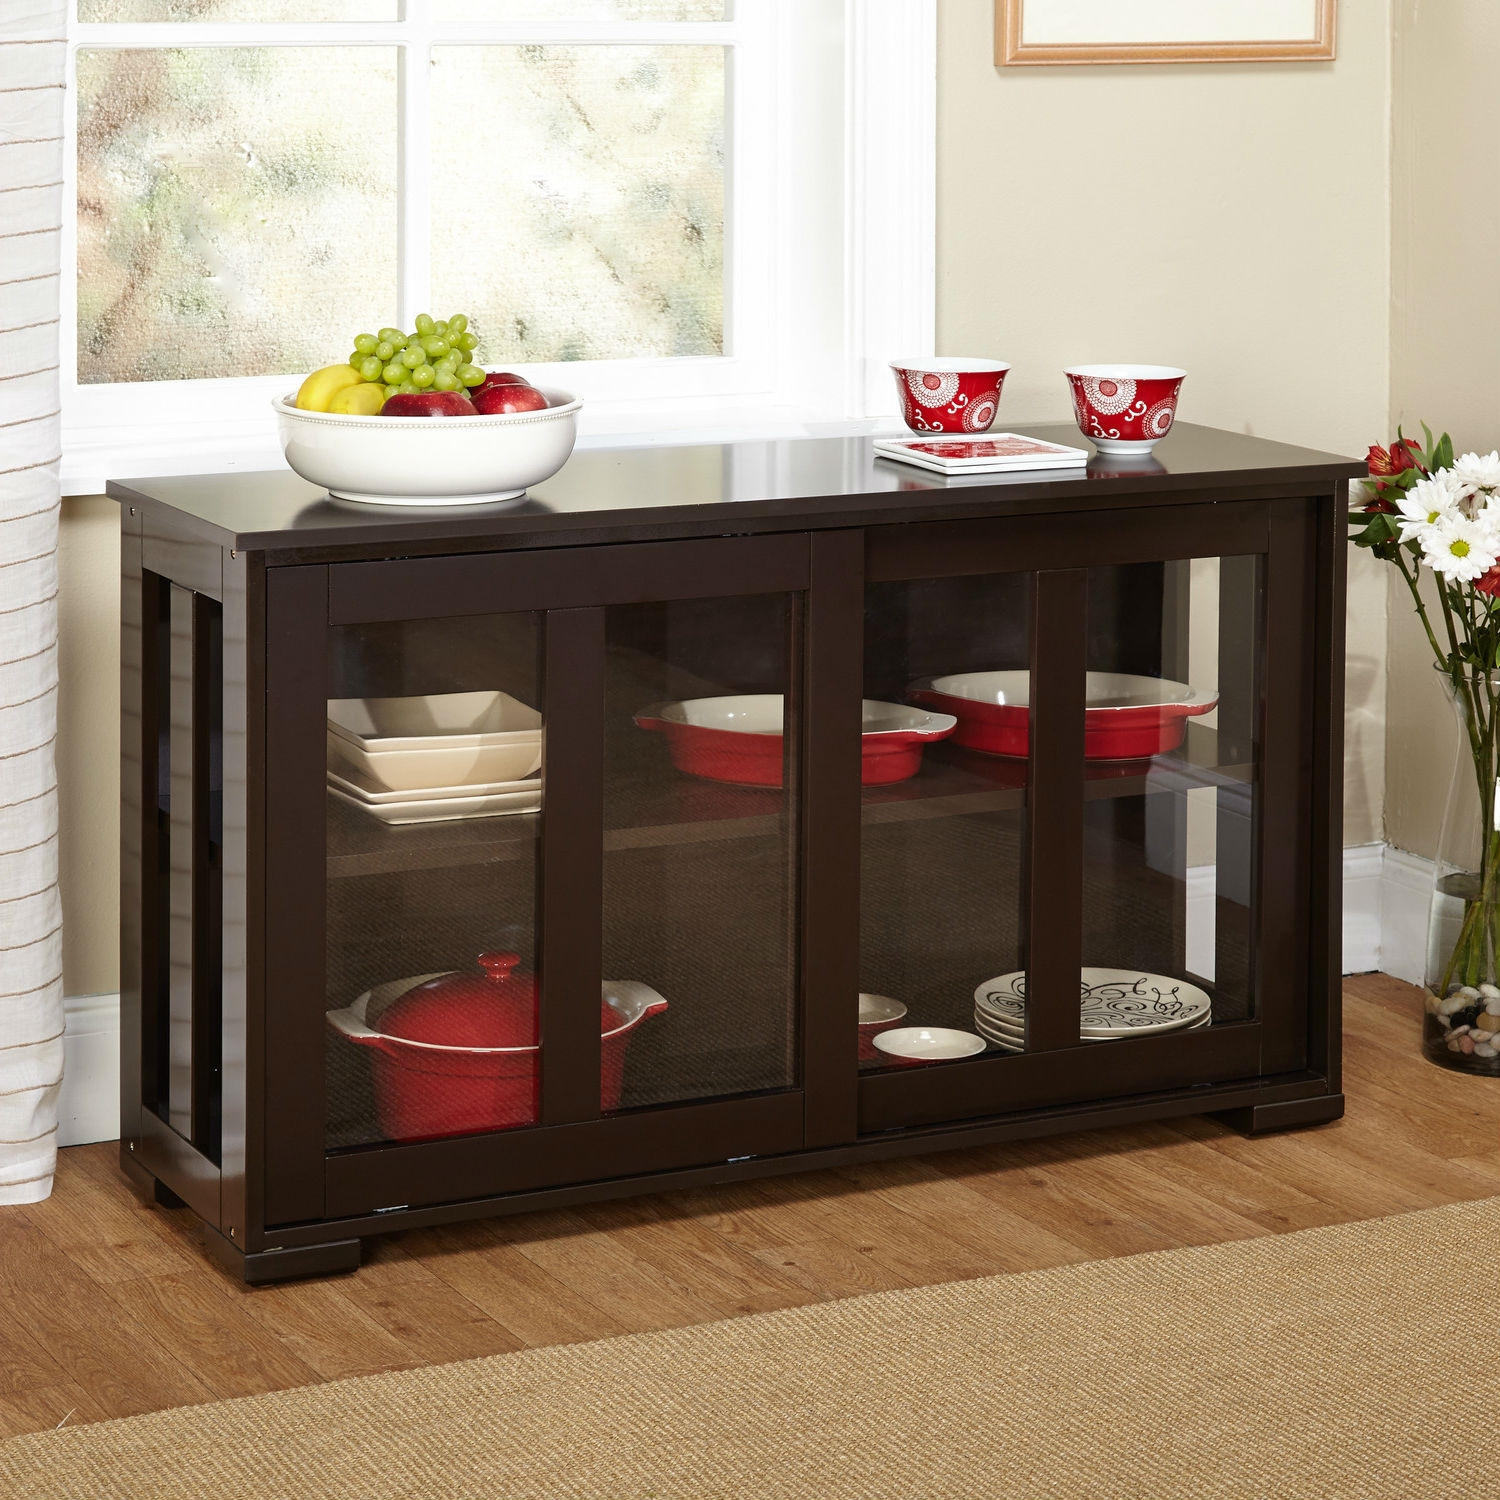 Buffet Kitchen Cabinet Espresso Sideboard Buffet Dining Kitchen Cabinet With 2 Glass Sliding Doors